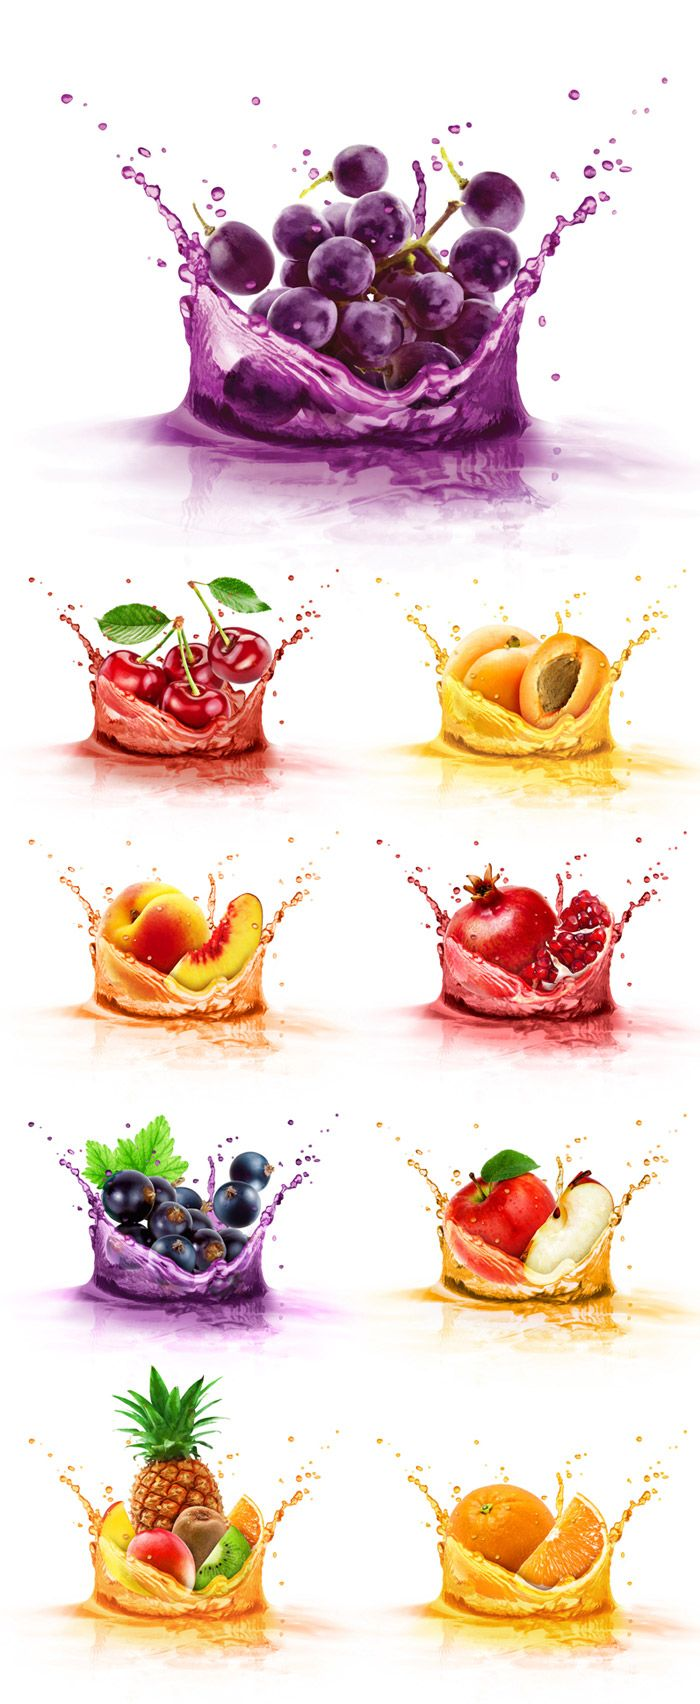 +more fruit juice illustrations